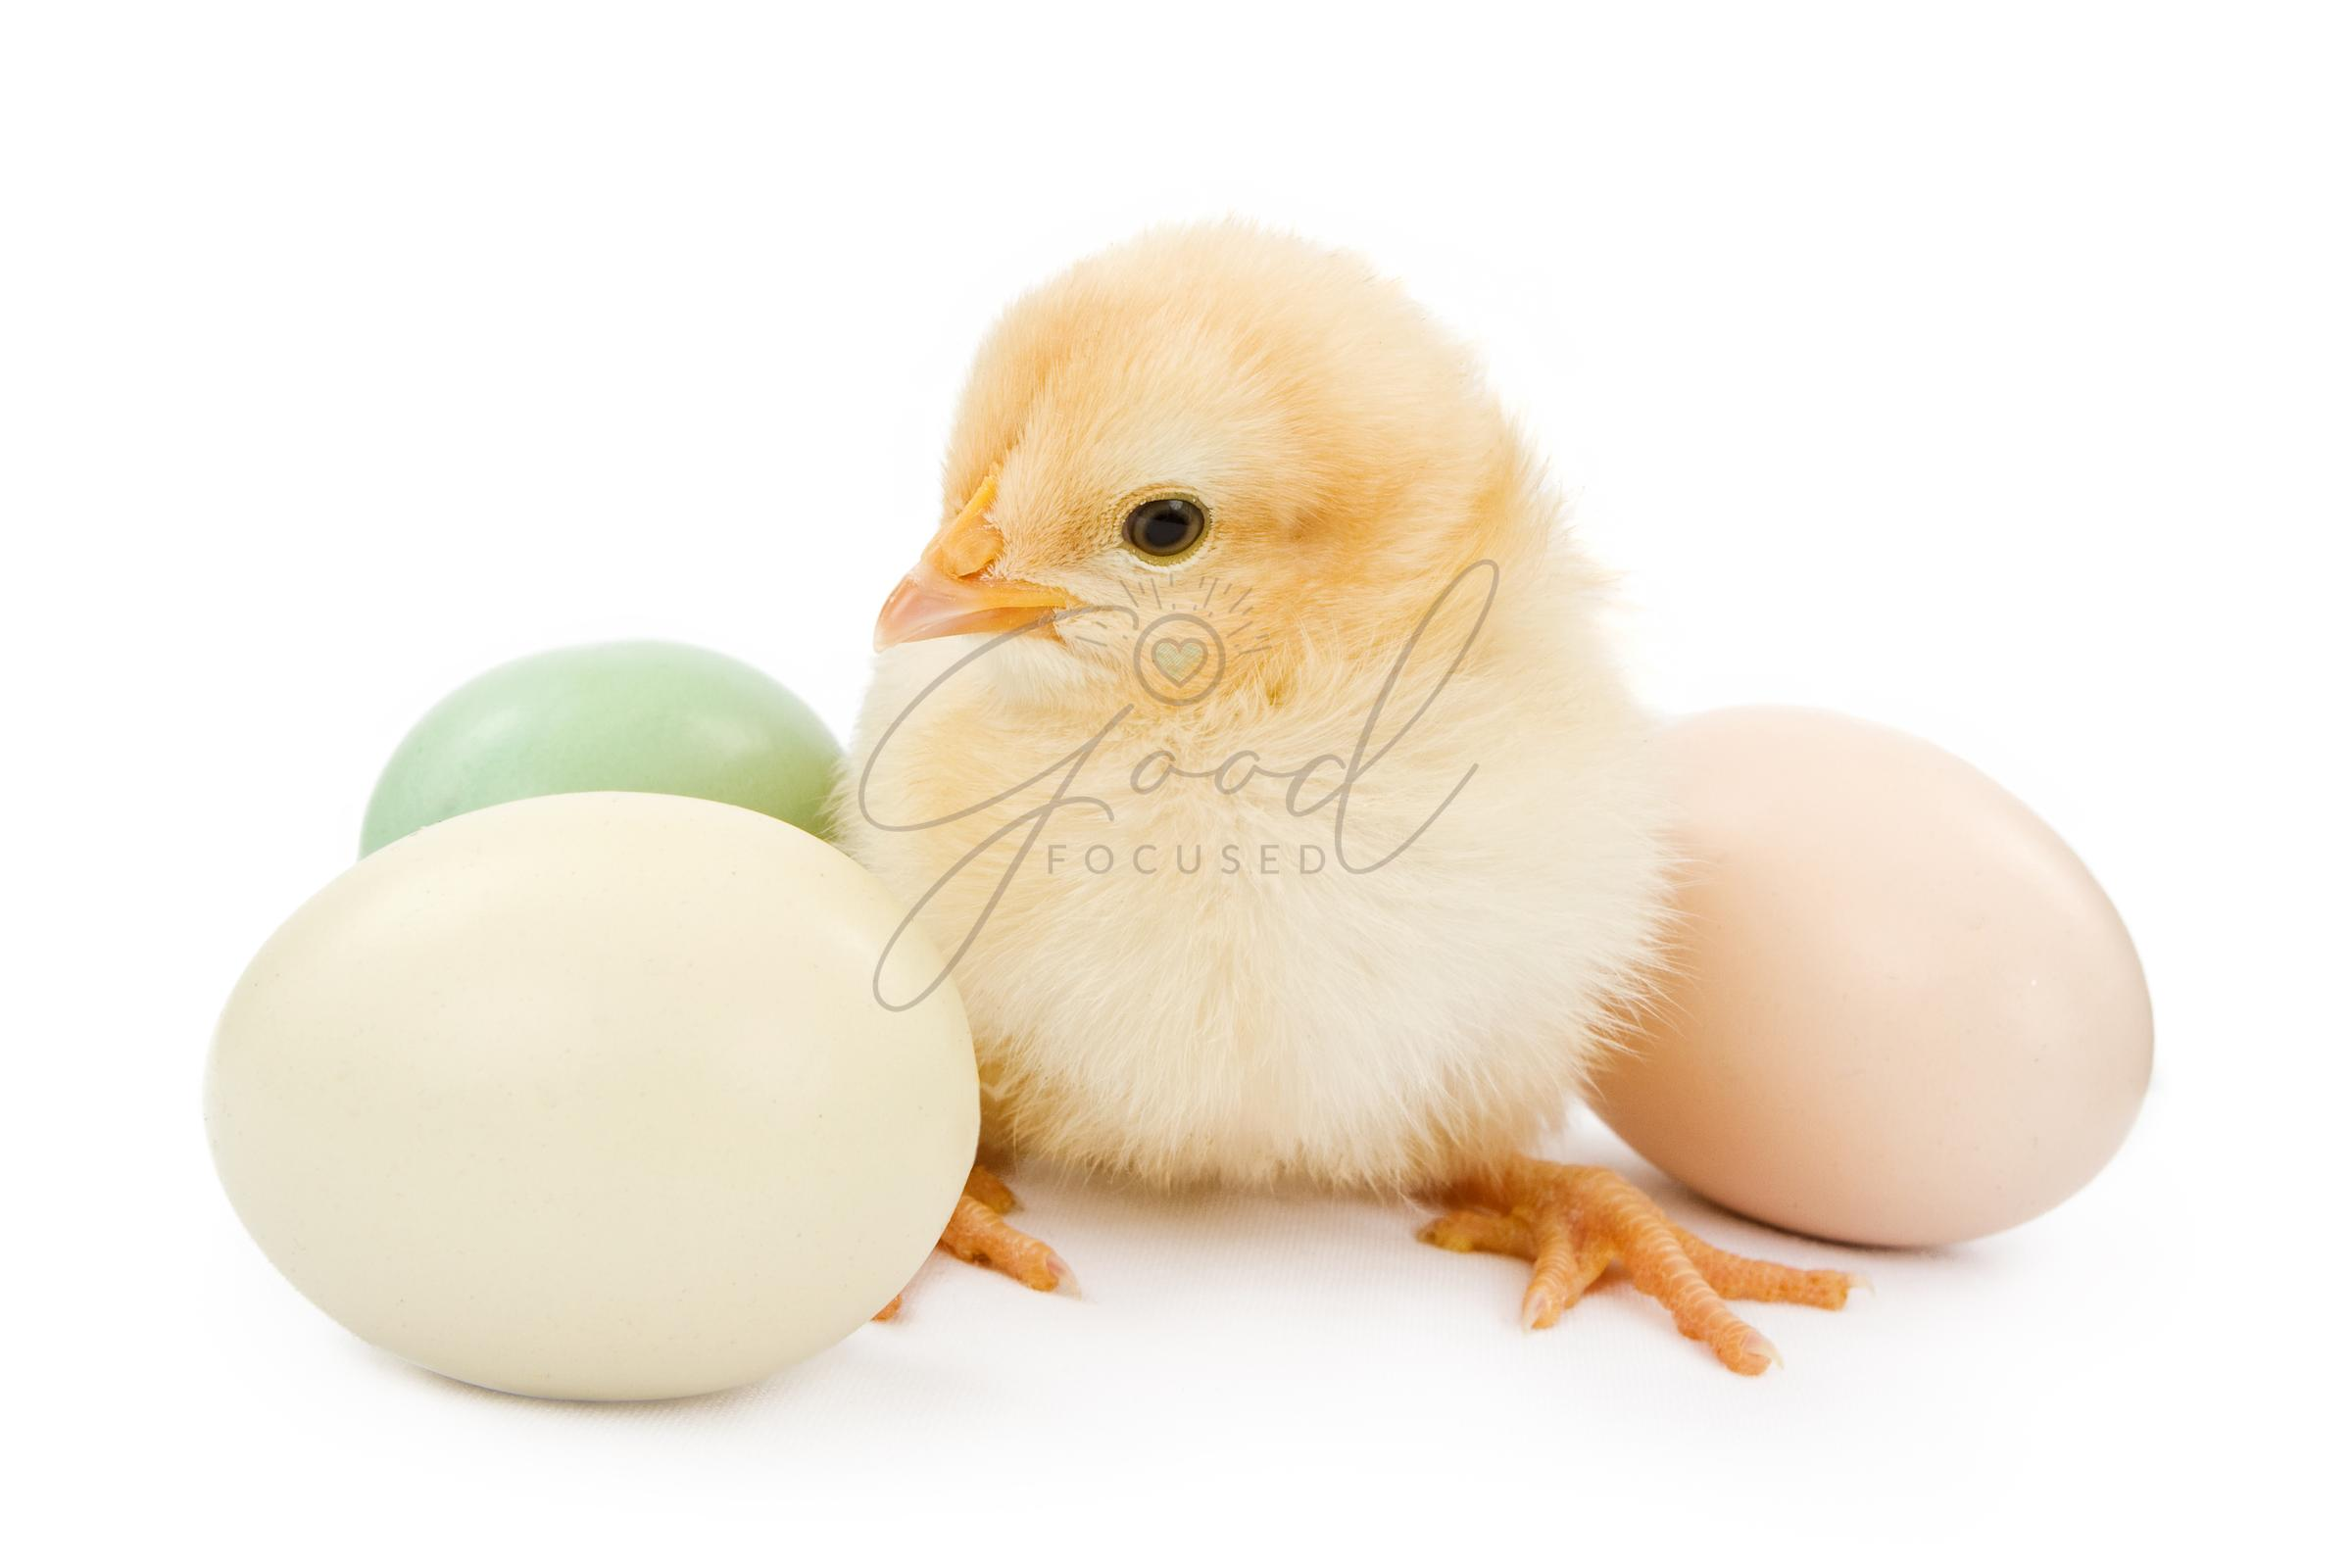 A baby chicken next to Easter eggs